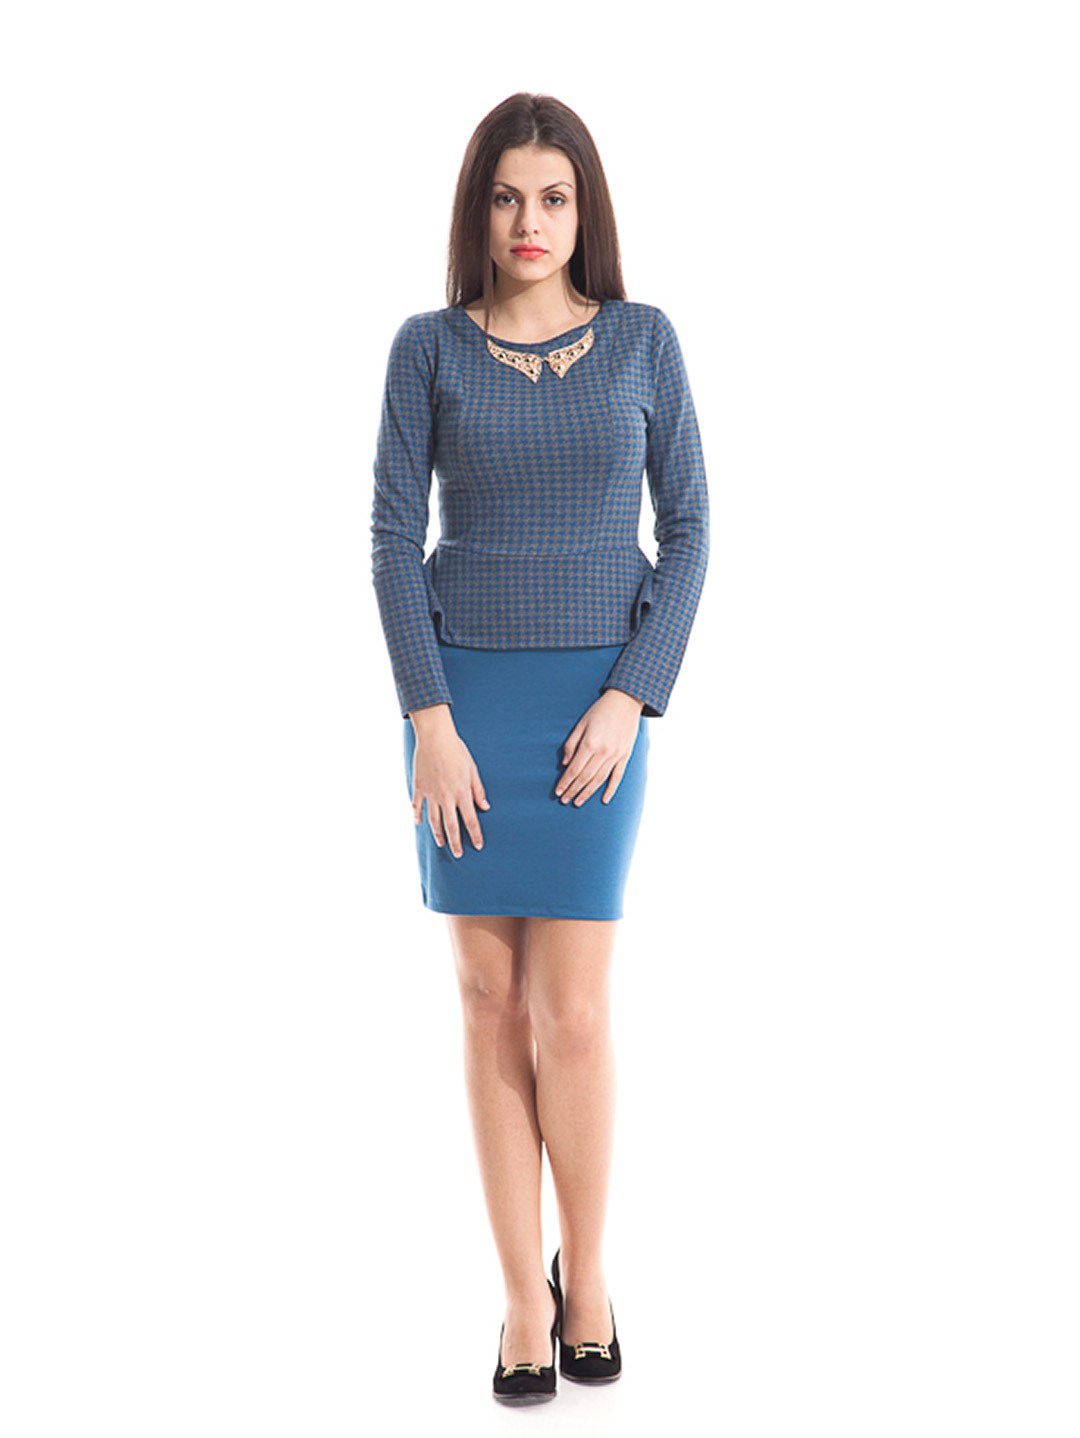 Short dresses 2013 for girls office party wear short dresses